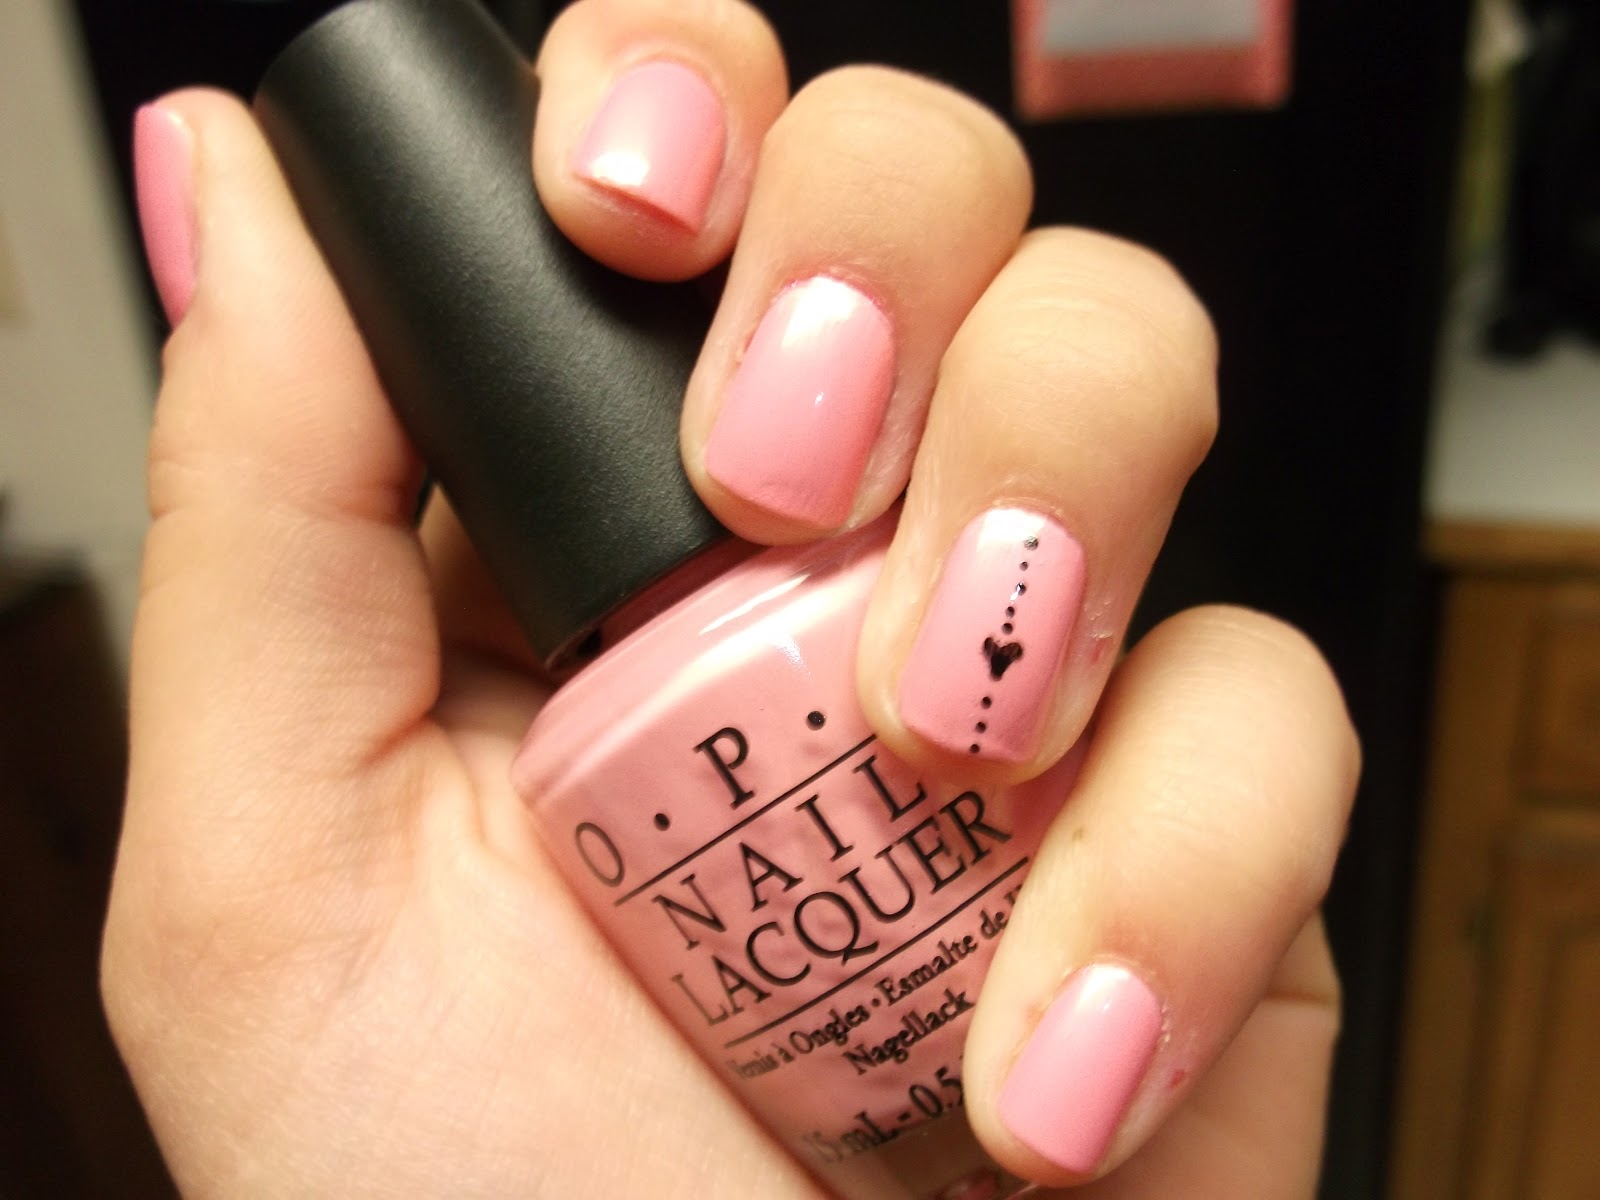 The Lacquered Diaries: OPI Italian Love Affair